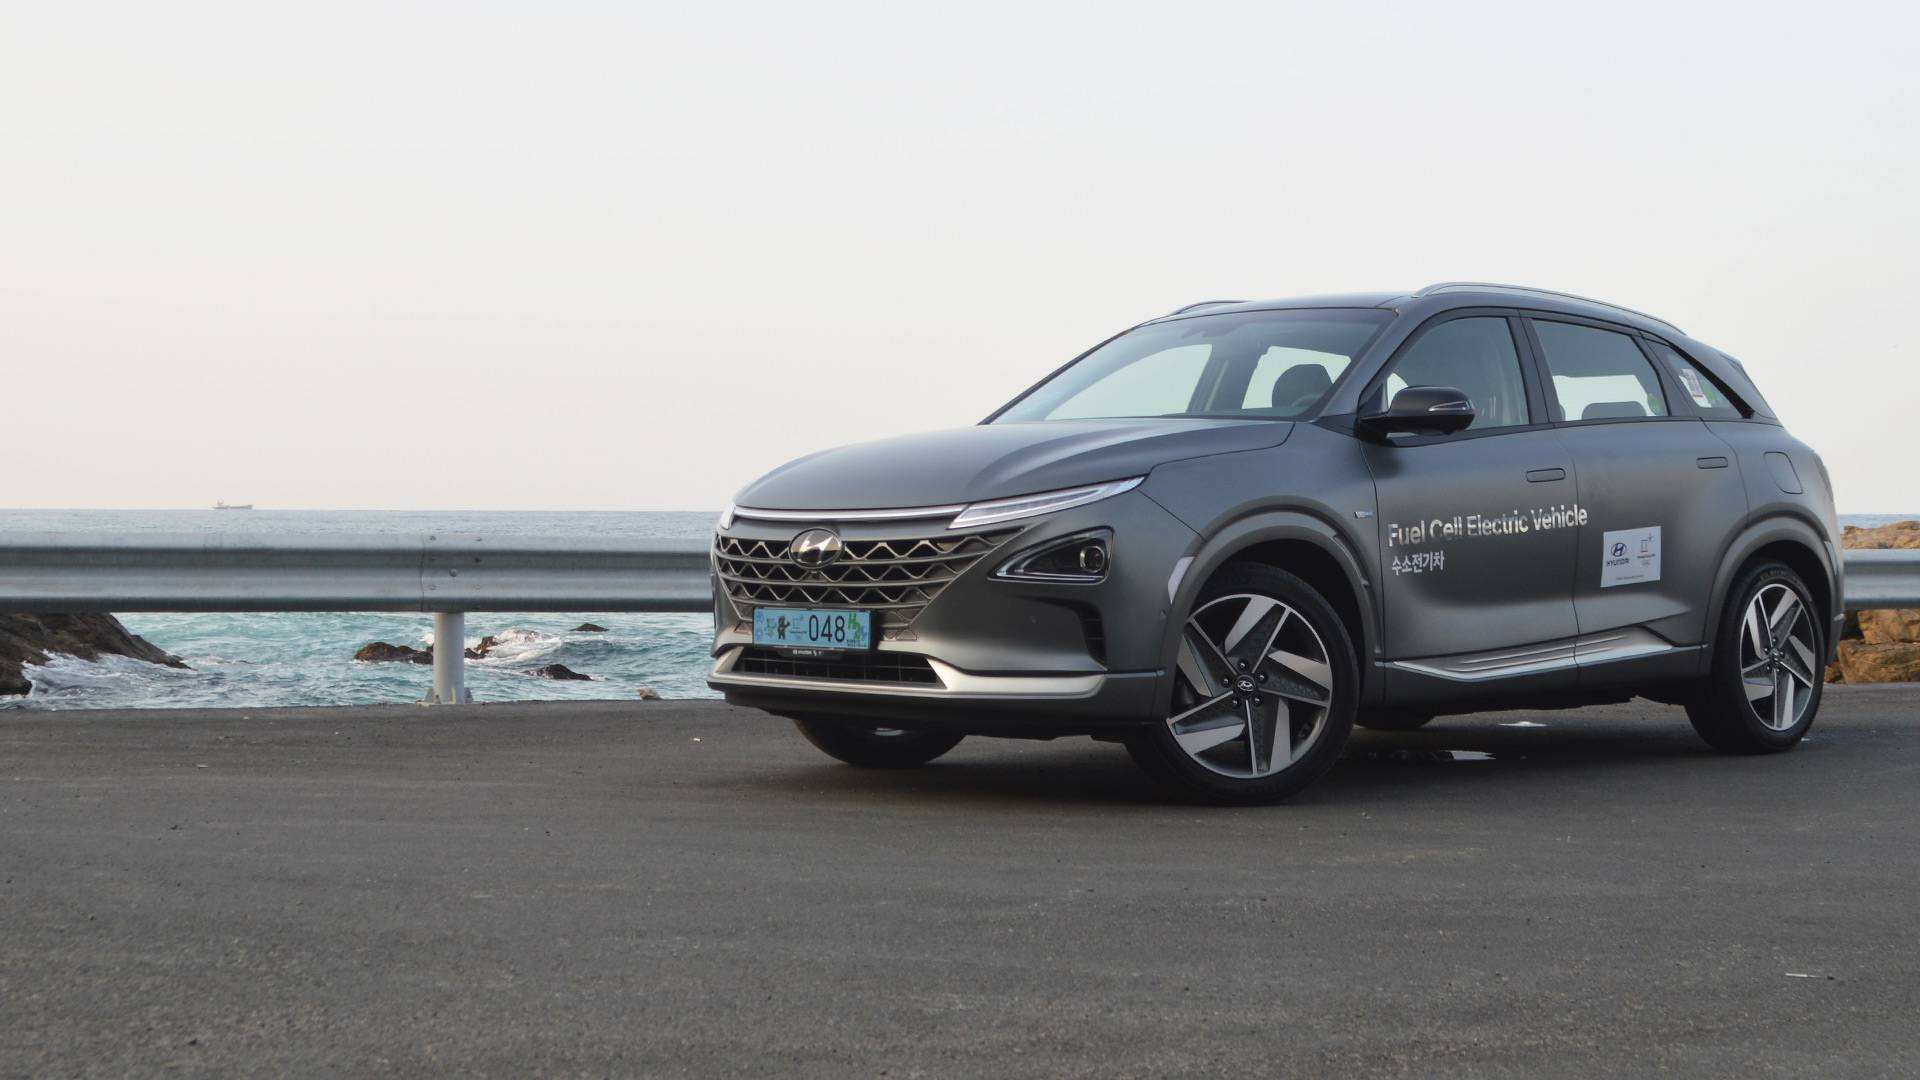 63 Great 2019 Hyundai Nexo Interior Specs for 2019 Hyundai Nexo Interior